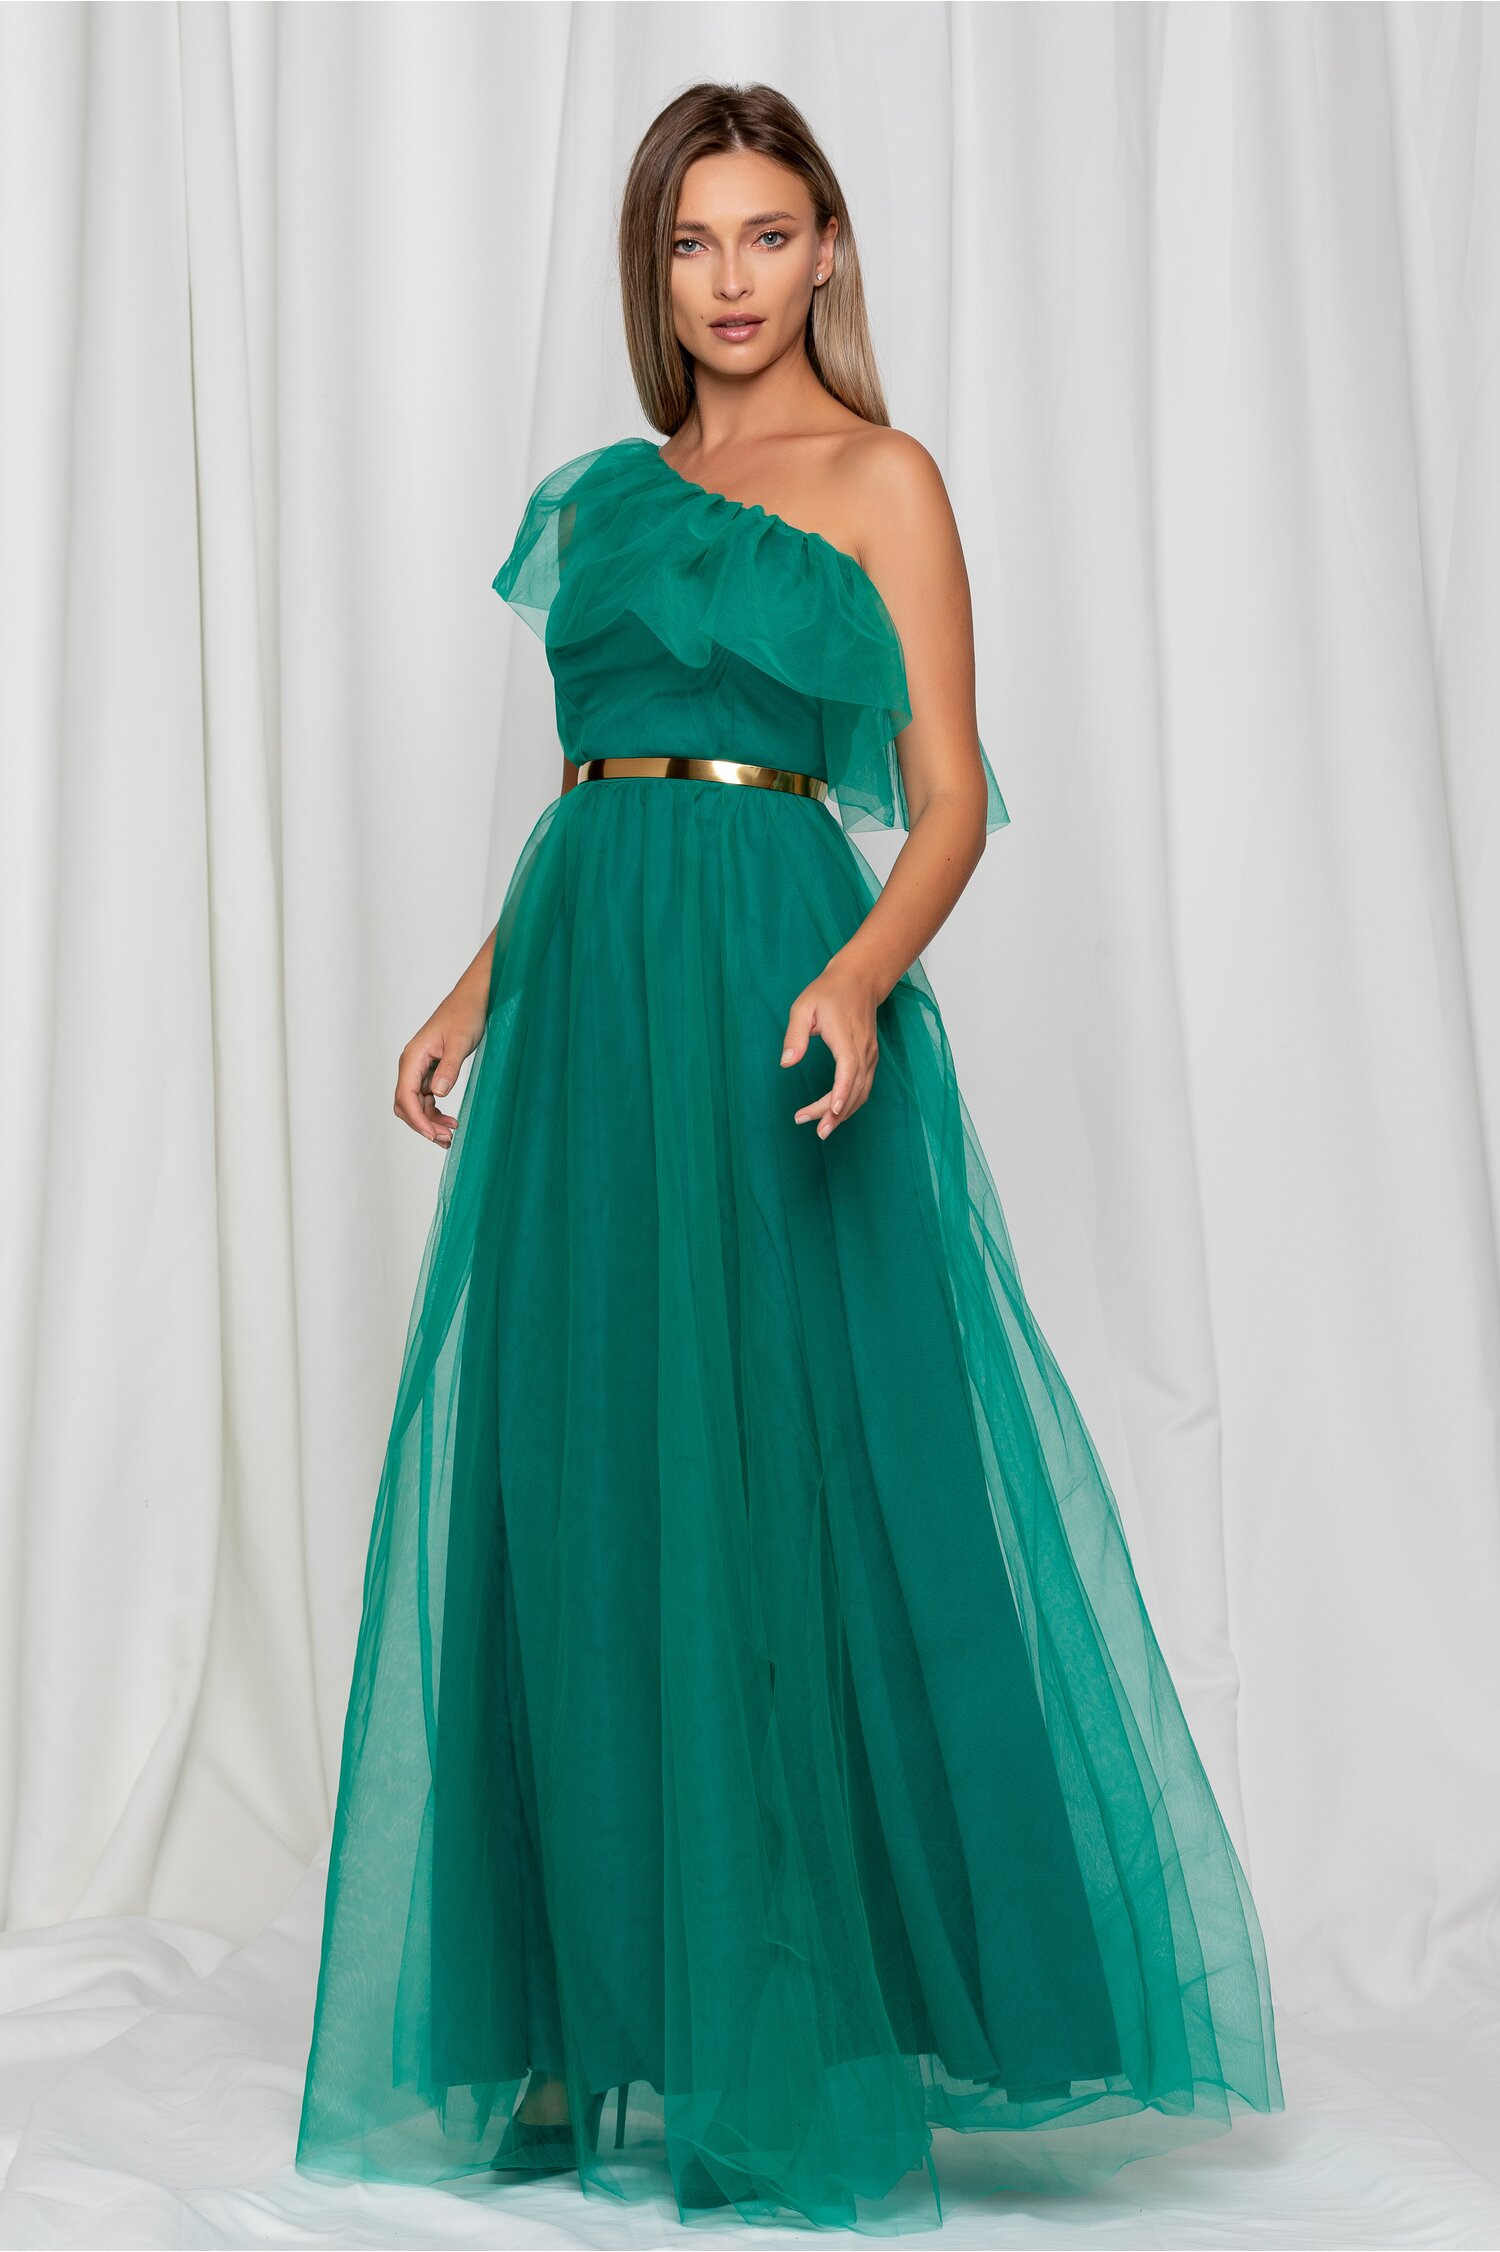 Rochie Dy Fashion Erica verde lunga din tull